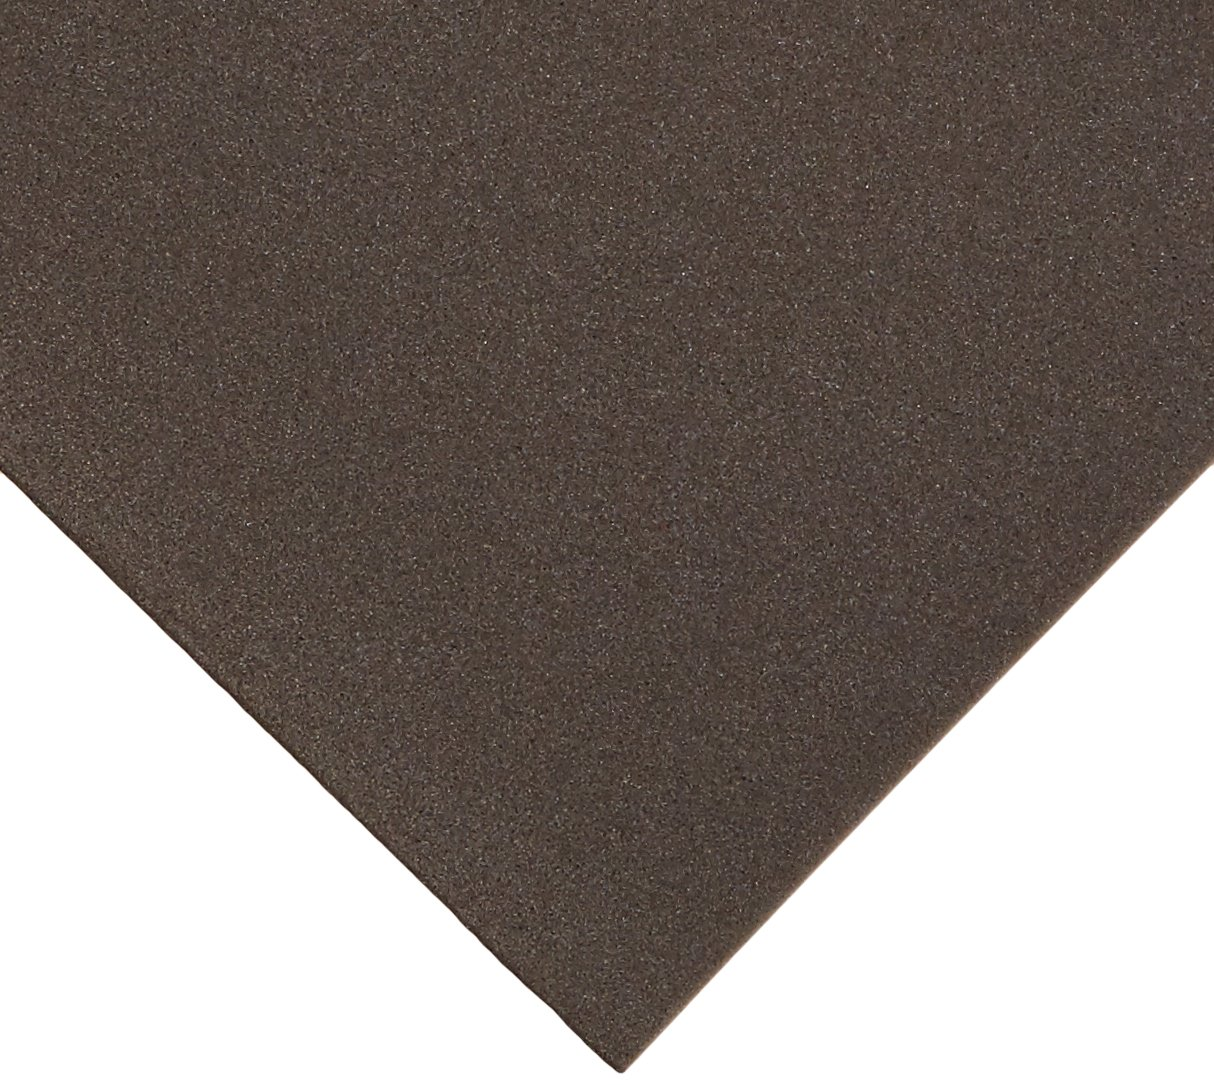 Rolyan Grey Foam Sheet 27'' x 82'' x 1/4'', Adaptable Foam Cushion for Shaping, Flexible Protection for Formation of Limbs and Body, Aid for Fibrotic Tissue Treatmeant and Compression Bandage